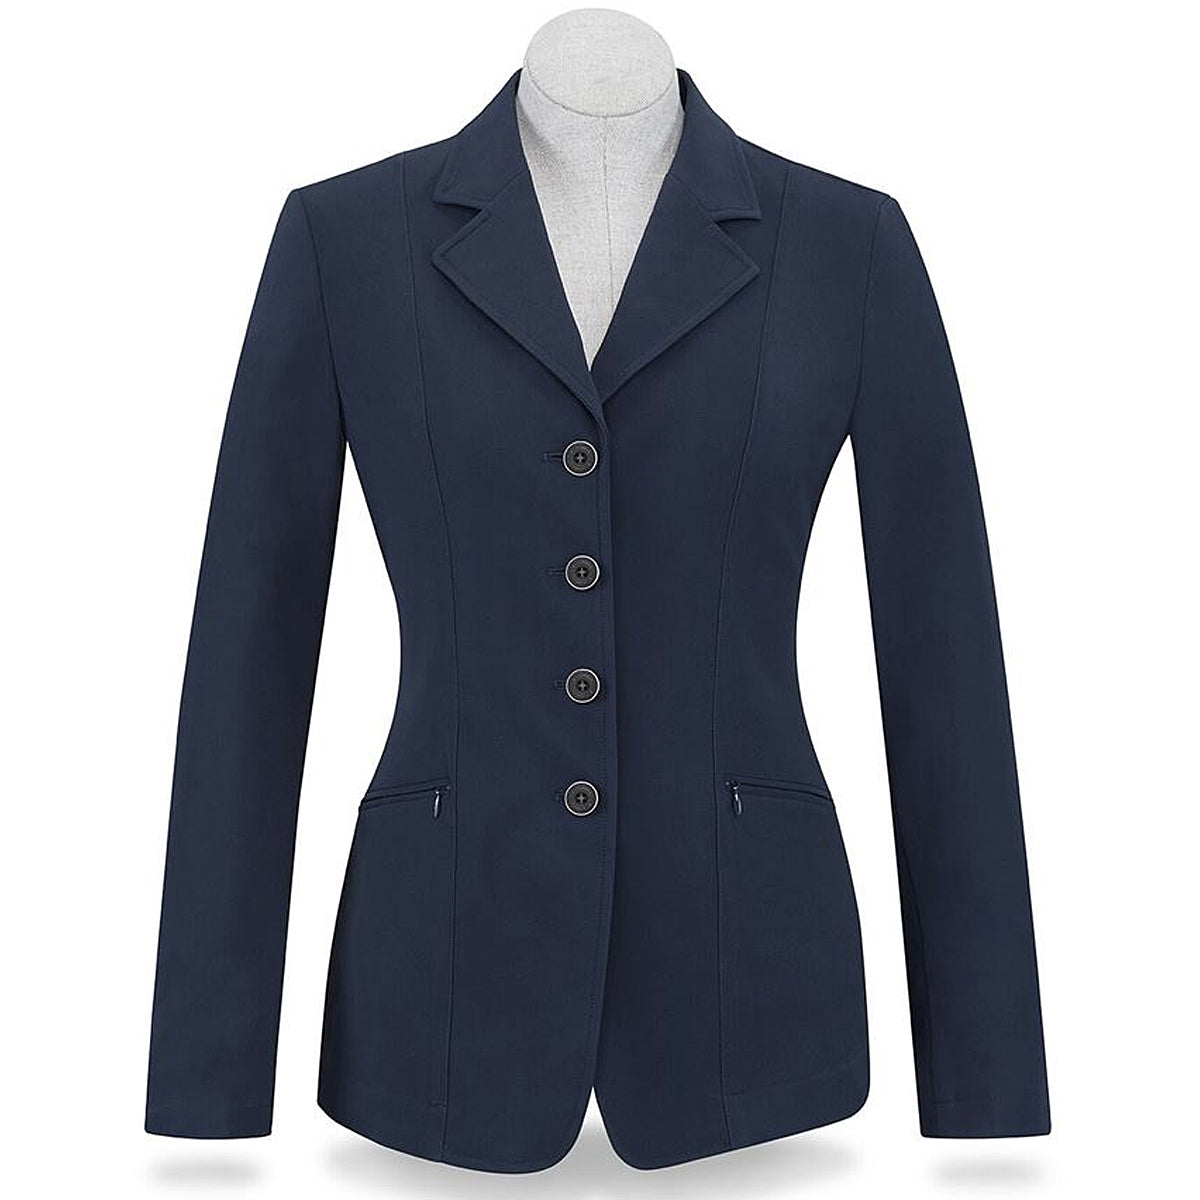 R.J. Classics Victory Ladies' Show Coat